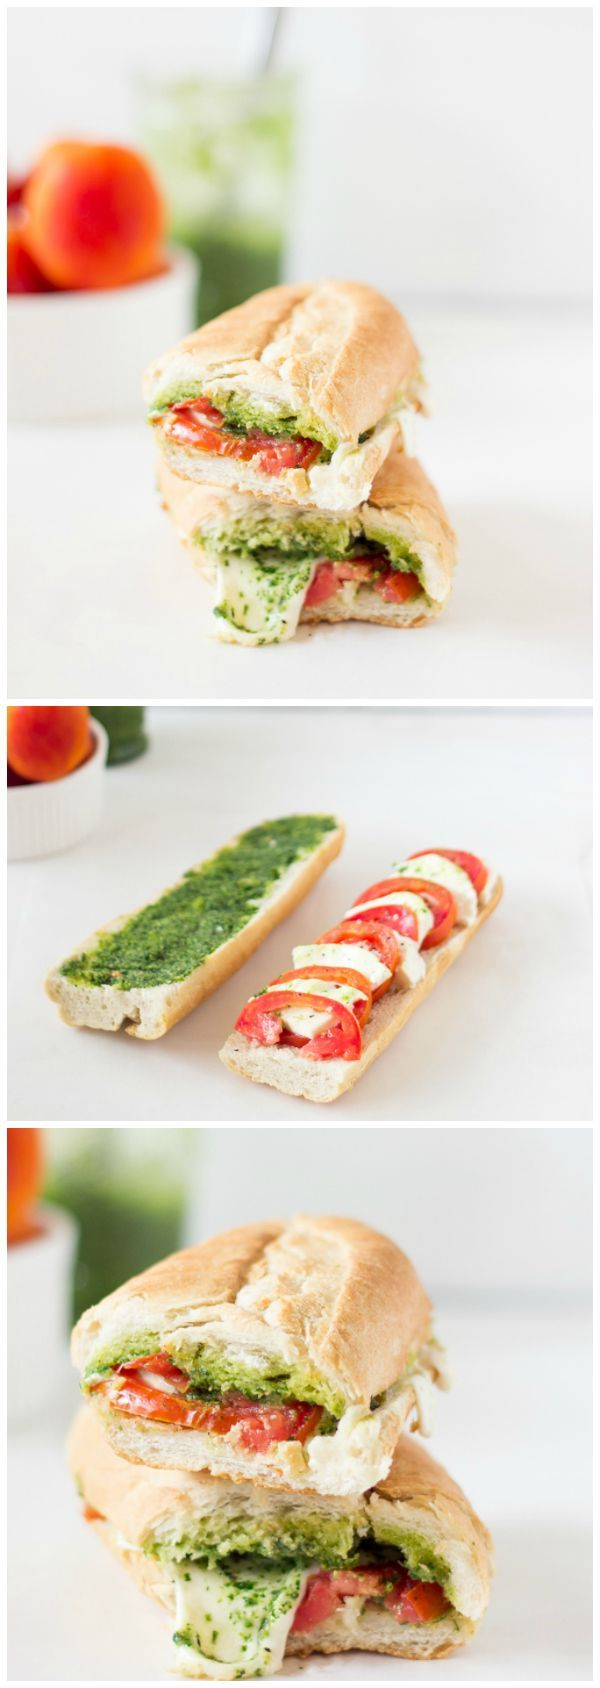 Caprese Sandwich with Parsley Pesto - Jessiker Bakes | The Blog